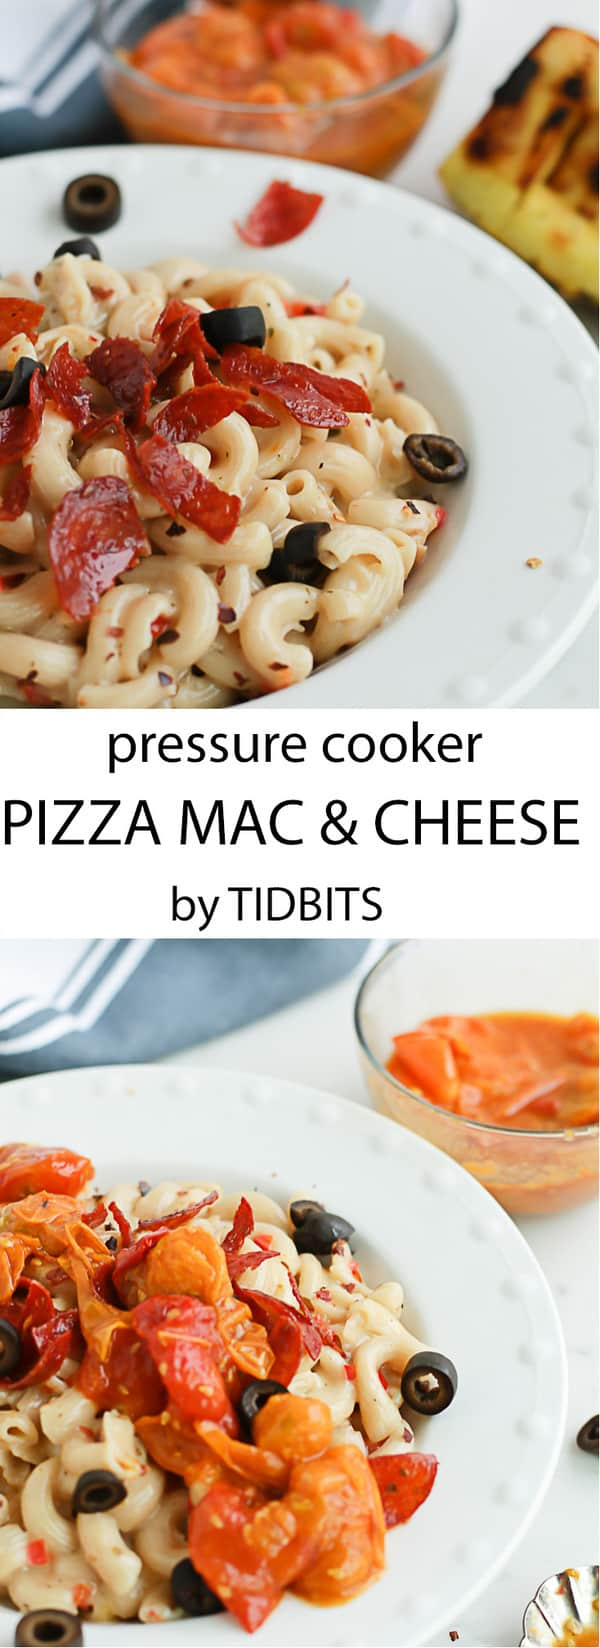 Pressure Cooker Pizza Mac and Cheese. Healthy, Whole Grain, Creamy Mac and Cheese meets Pepperoni Pizza and we all get to fall in love! Instant pot pizza | Instant pot pasta | Healthy dinner #instantpotmacandcheese #instantpotpizza #pastadish